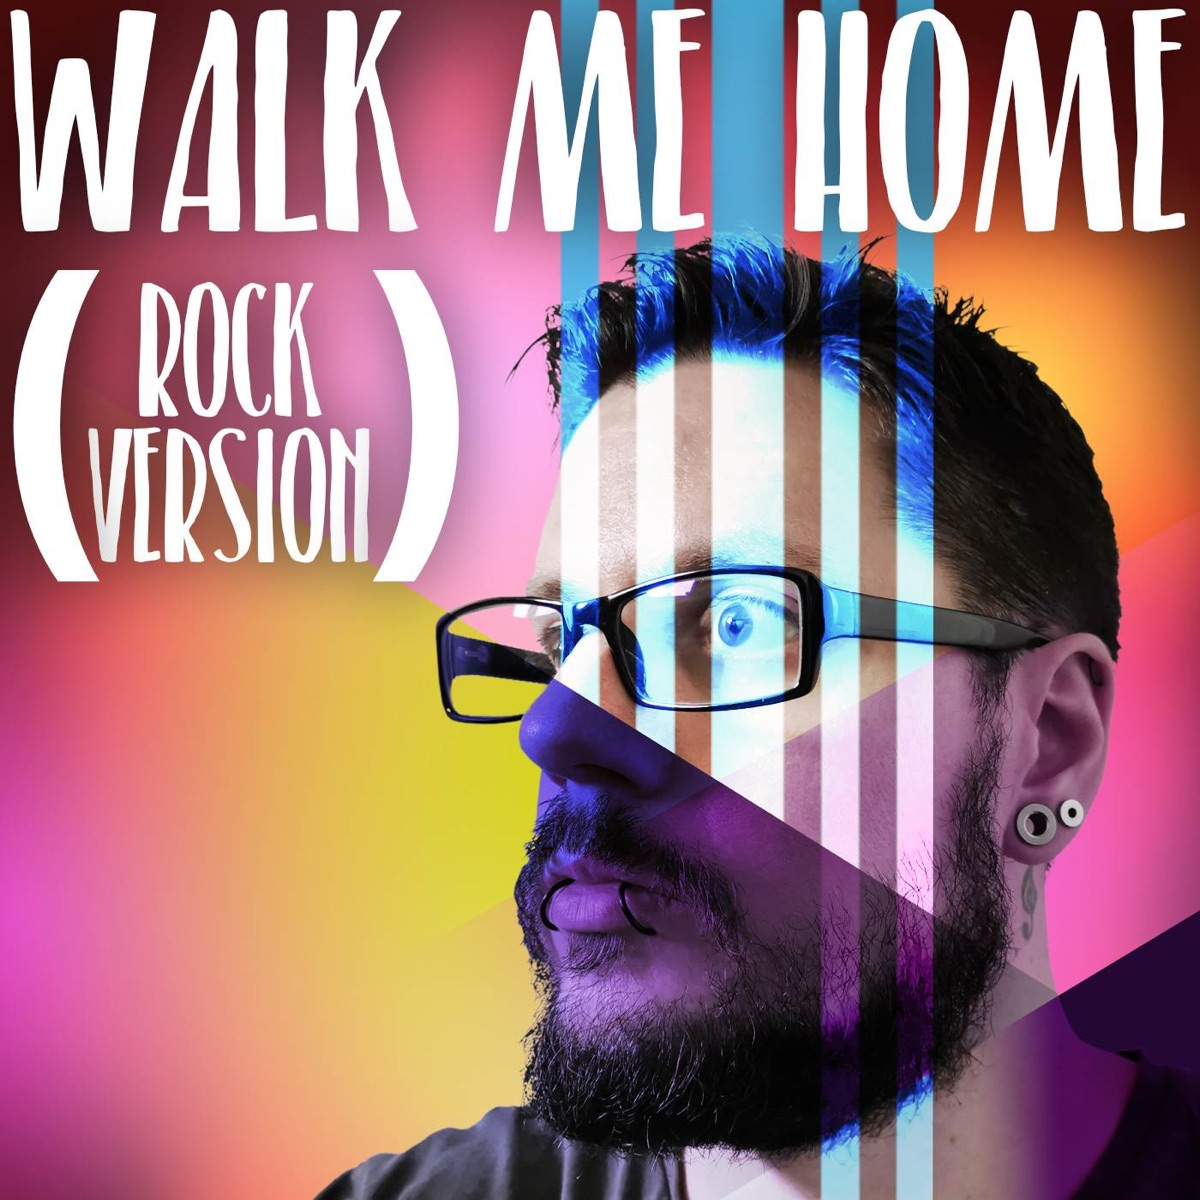 Walk Me Home Rock Version - Single Jack Muskrat CD cover